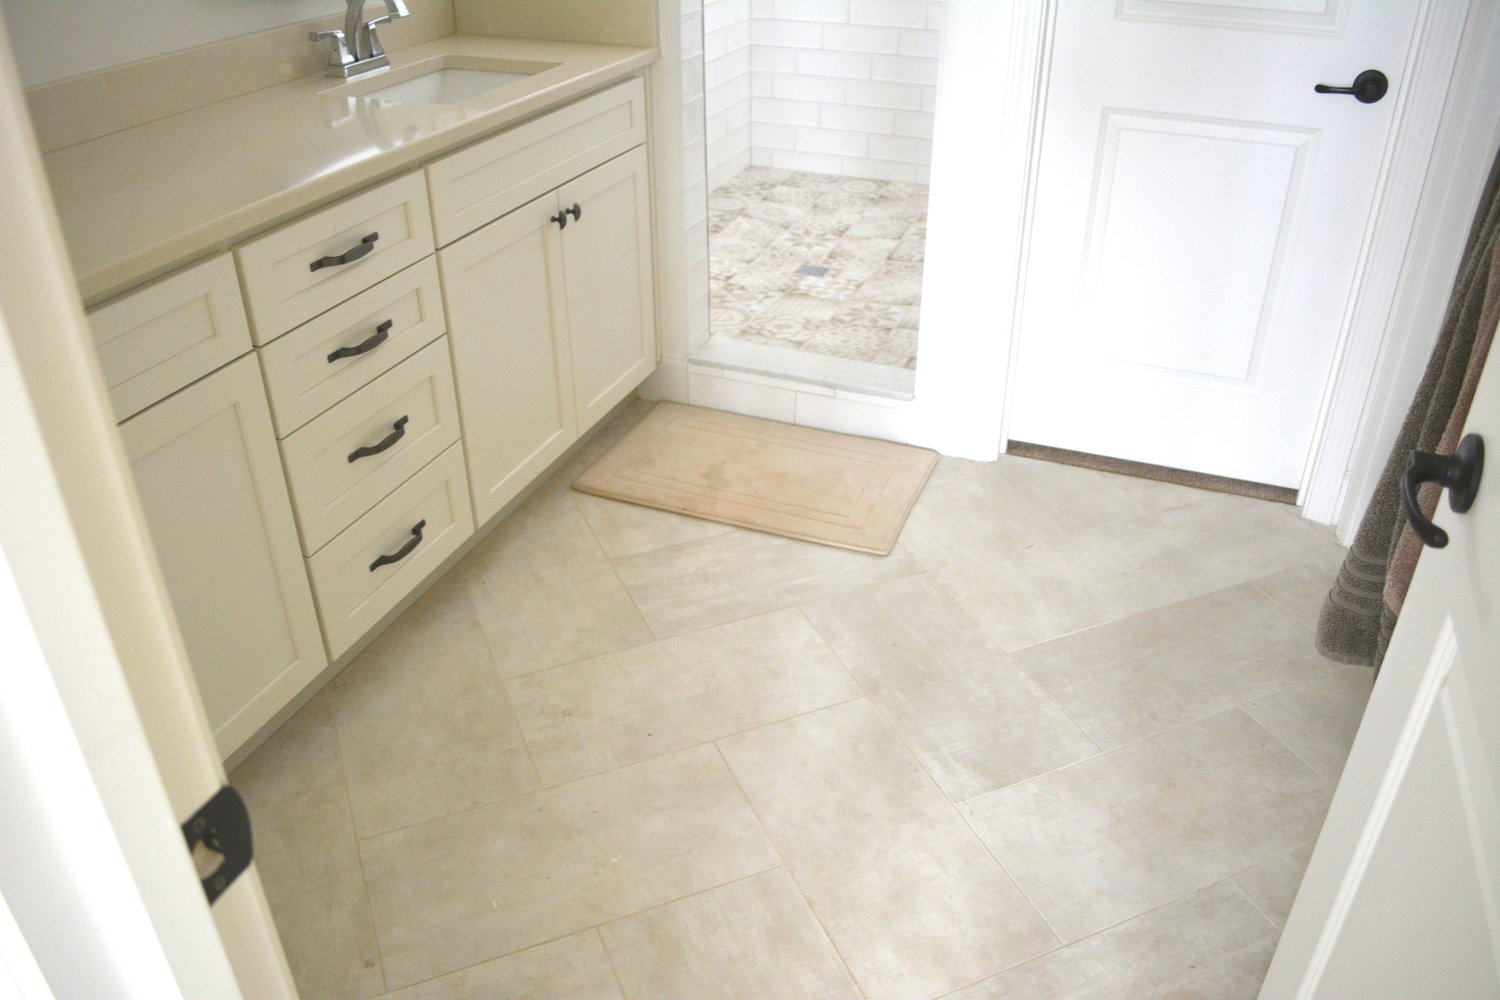 What Is Better For A Bathroom Ceramic Or Porcelain Tile Three